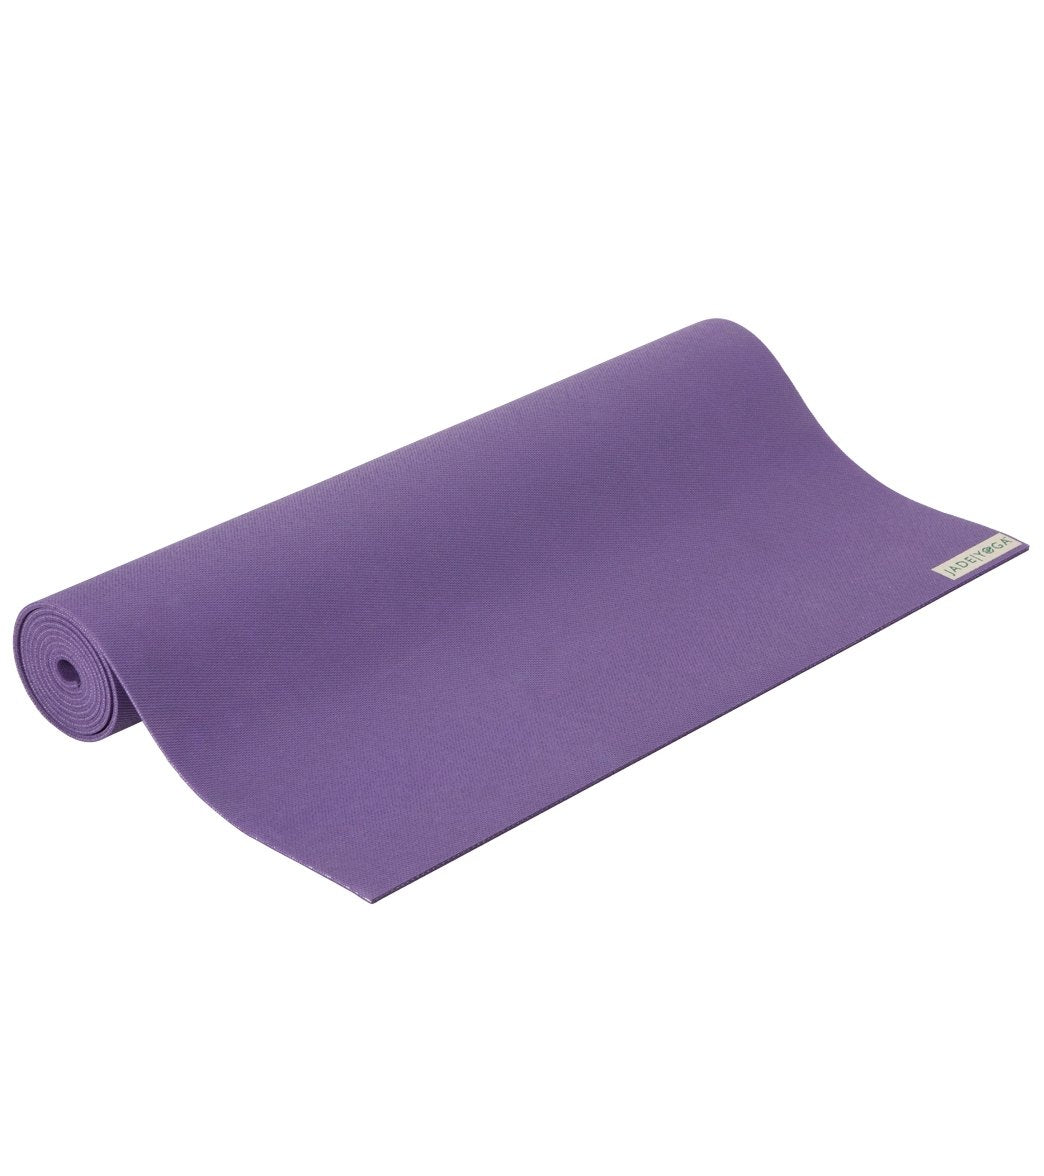 Which Yoga Mat Does Adriene Use Yoga Mats